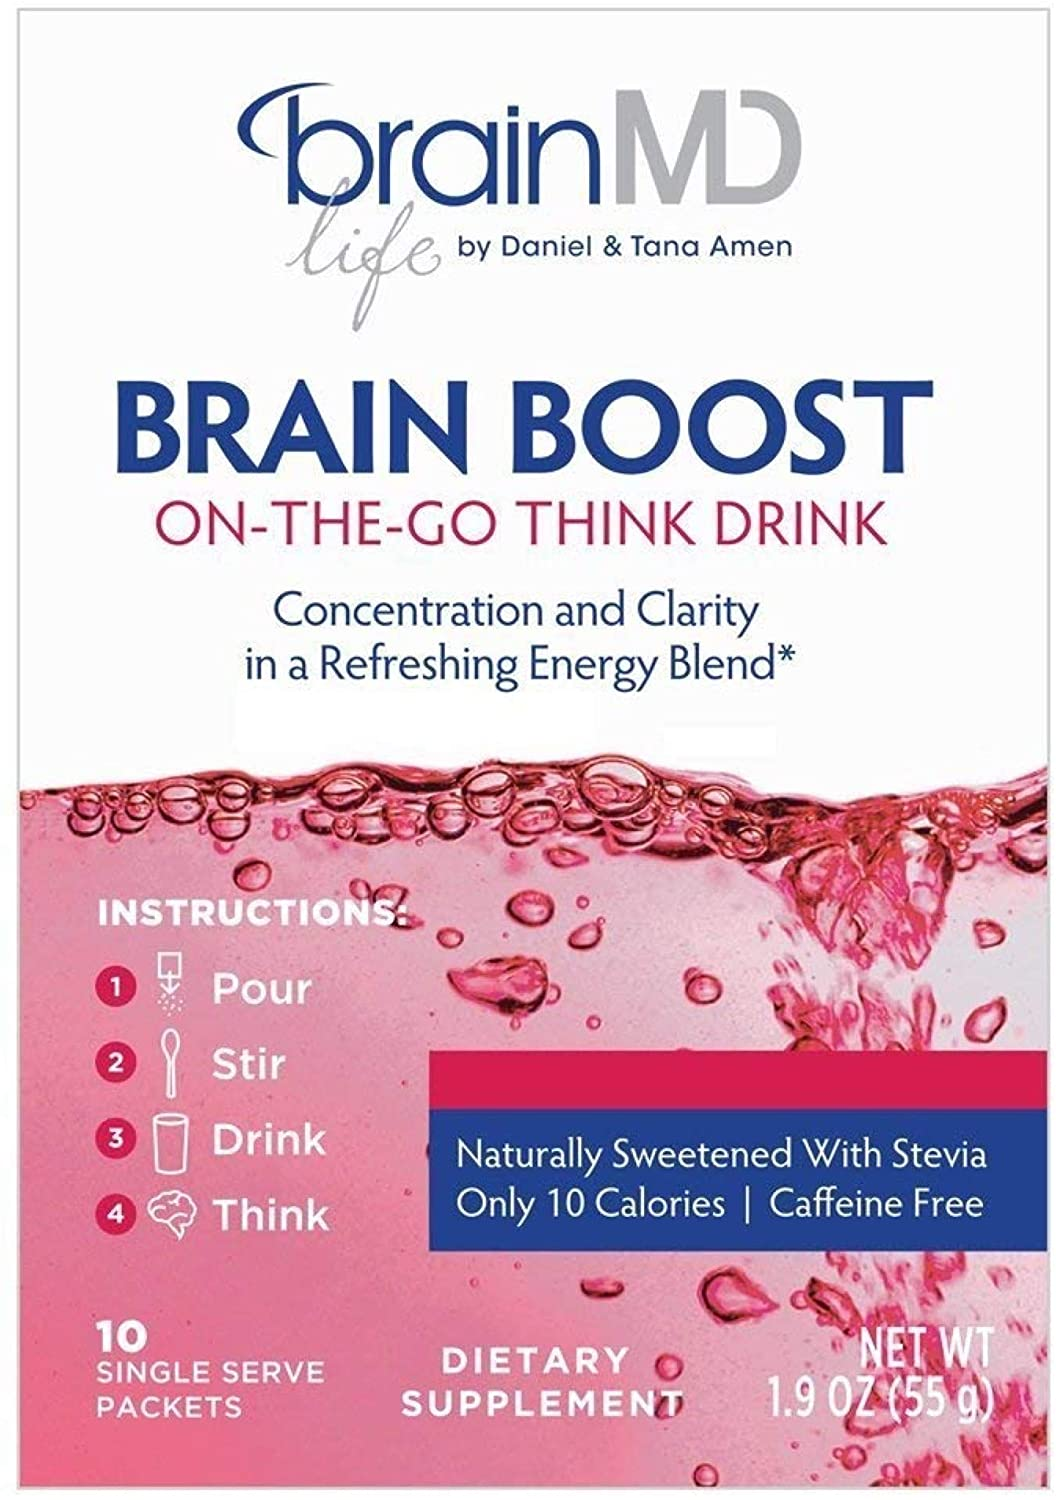 Dr. Amen brainMD Brain Boost On The Go - 10 Packets, Berry Flavor - Nootropic Drink Powder, Promotes Focus, Clarity & Mental Energy - Caffeine-Free, Gluten-Free - 10 Servings